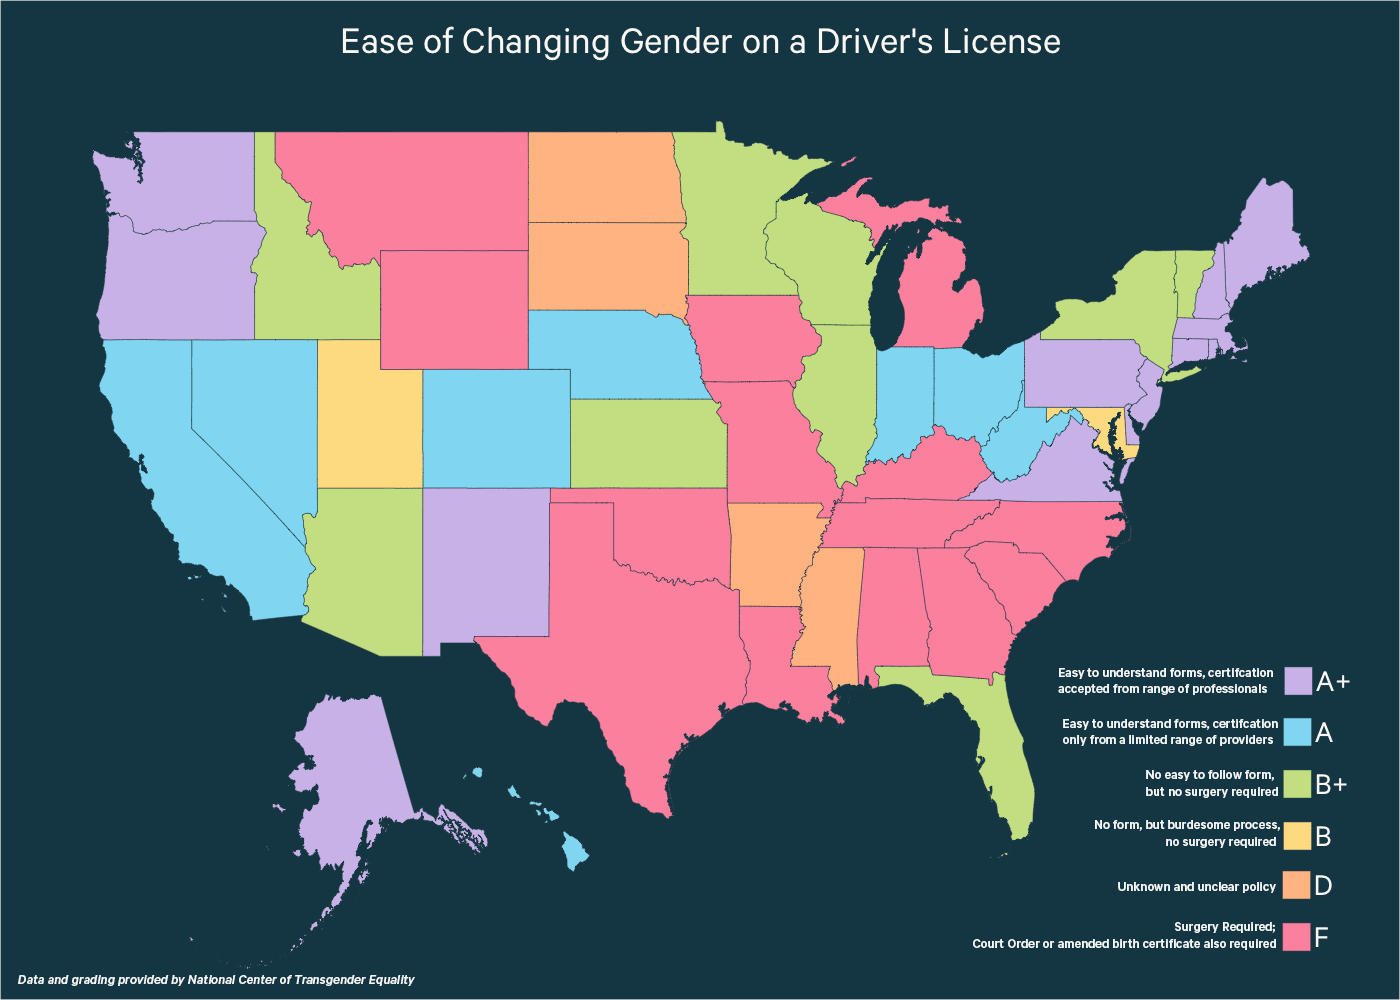 A map showing in which states is it hard and easy to change gender on a driver's license